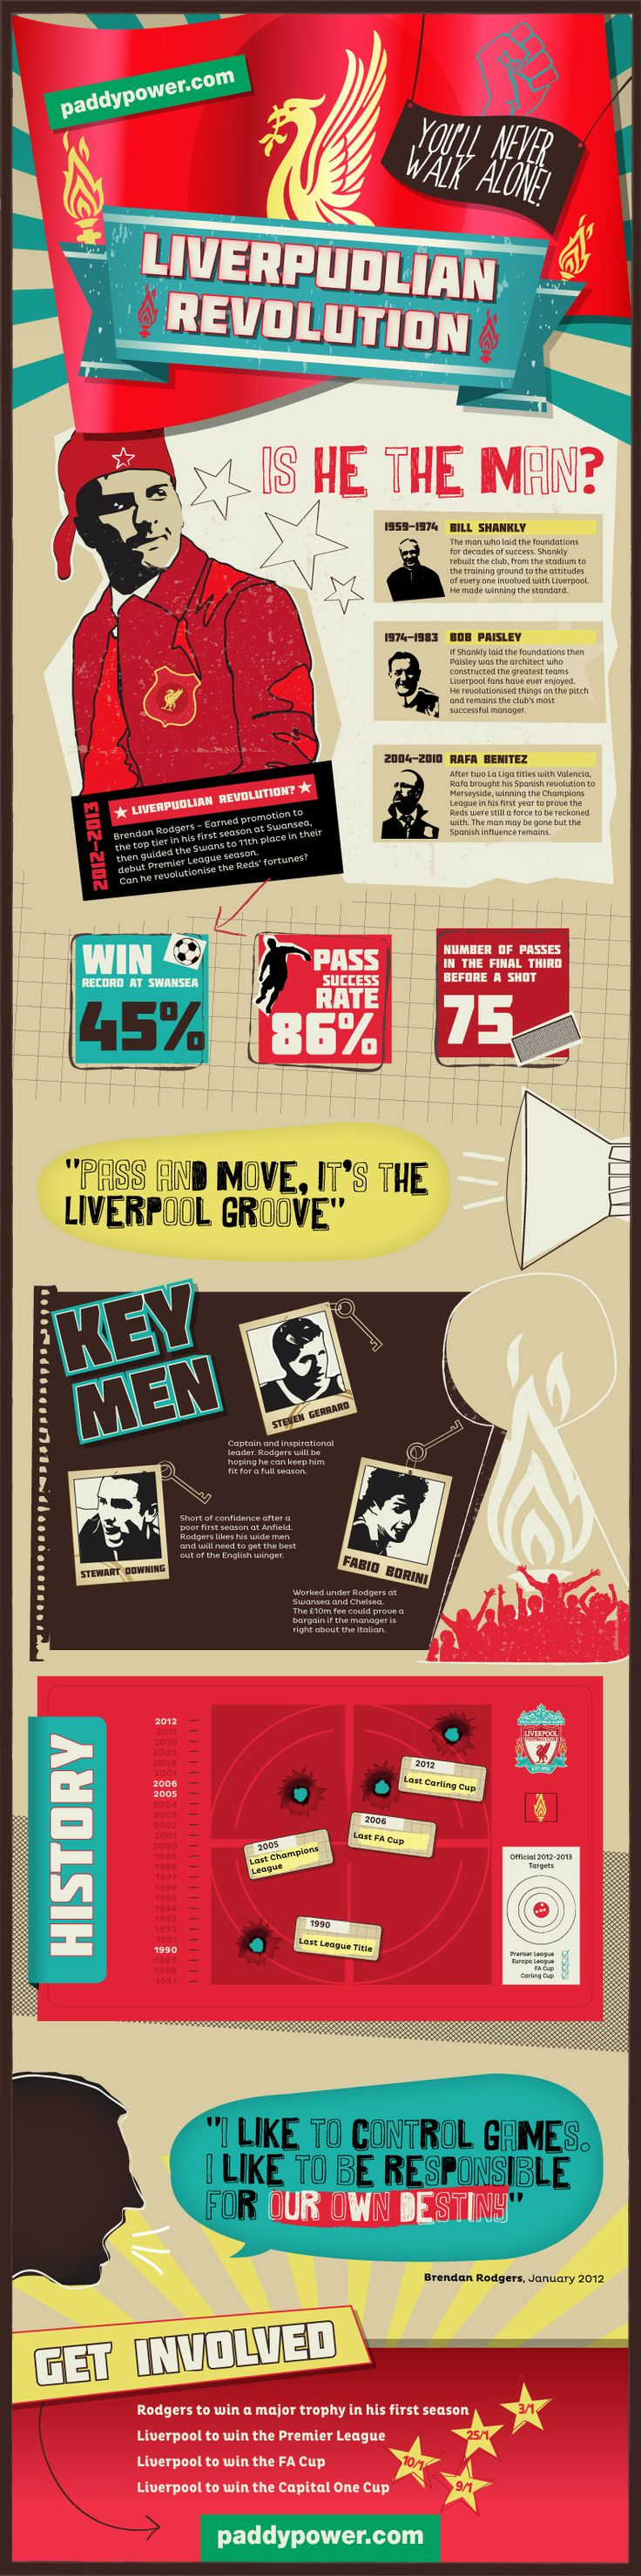 LFC Infographic: Liverpool Revolution (under Brendan Rodgers)